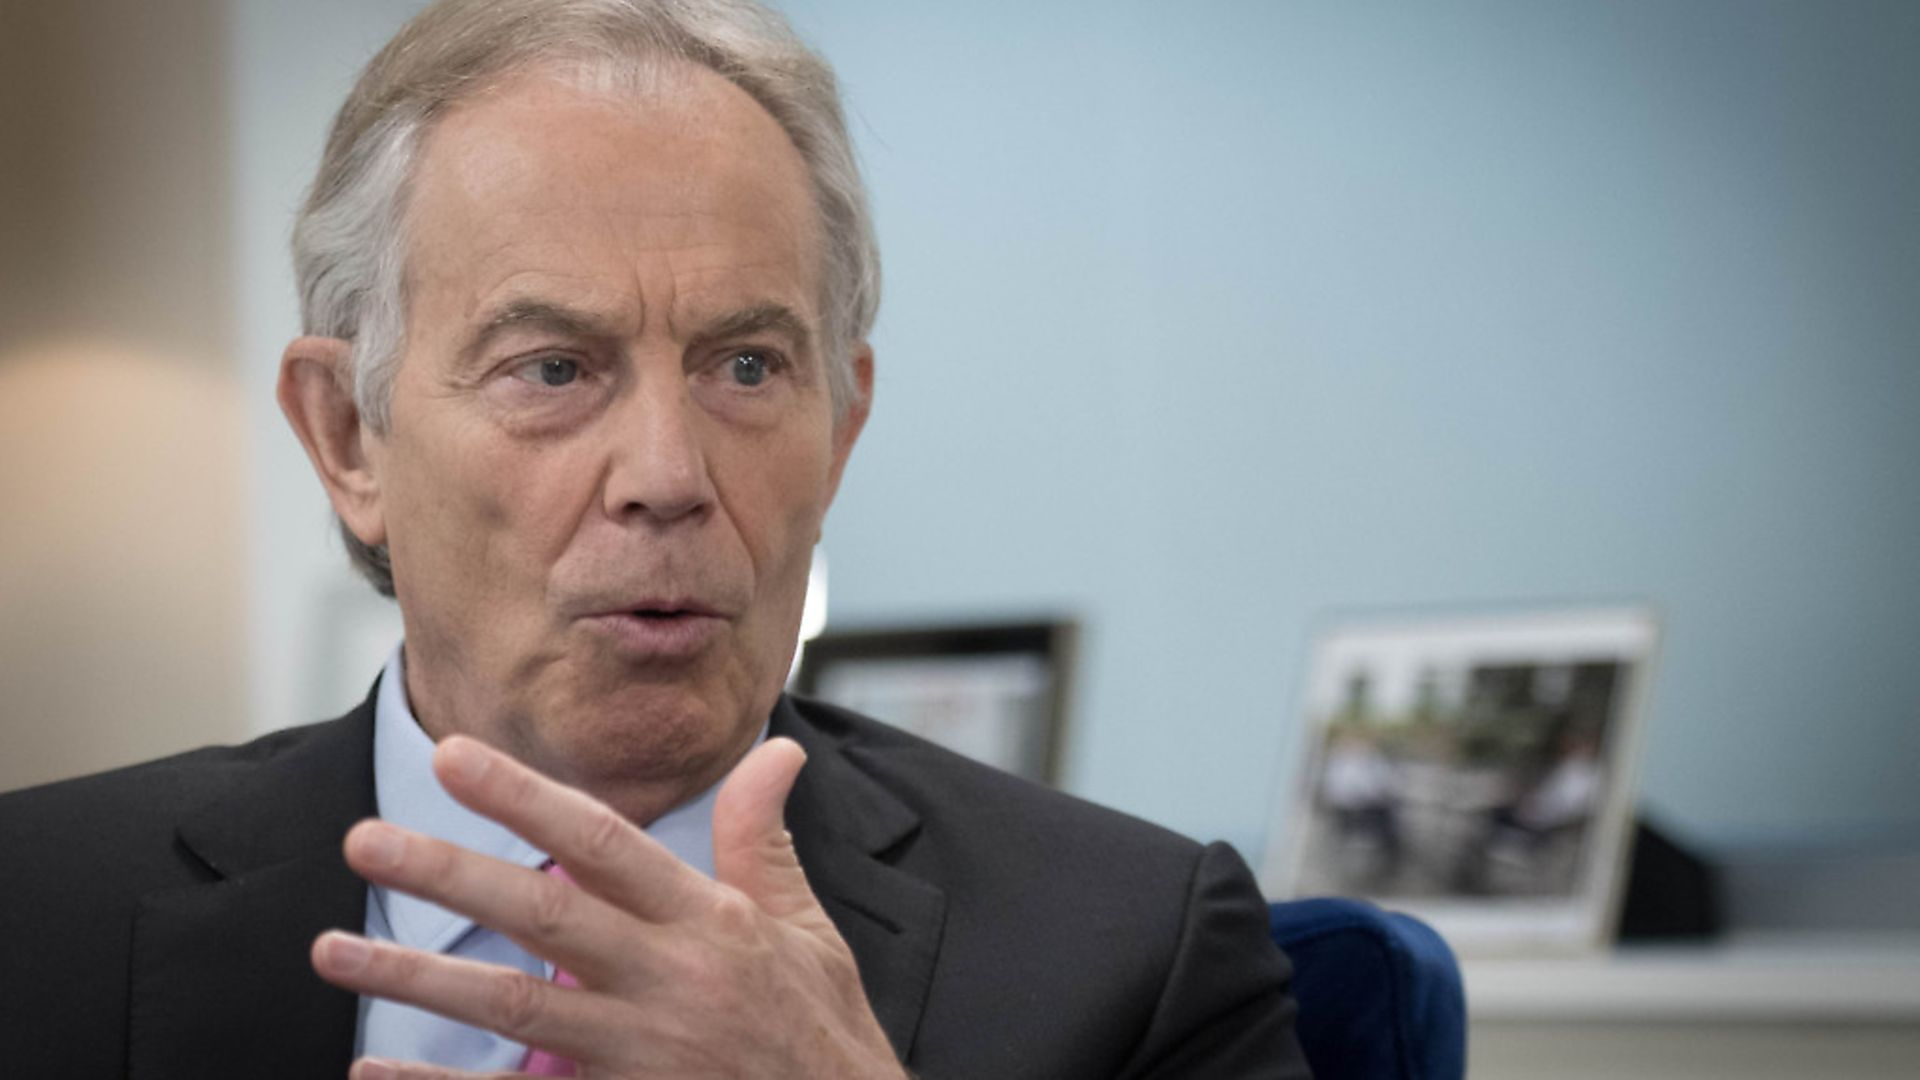 Former prime minister Tony Blair has attacked Labour over its Brexit stance/ Photo: PA/Stefan Rousseau - Credit: PA Wire/PA Images